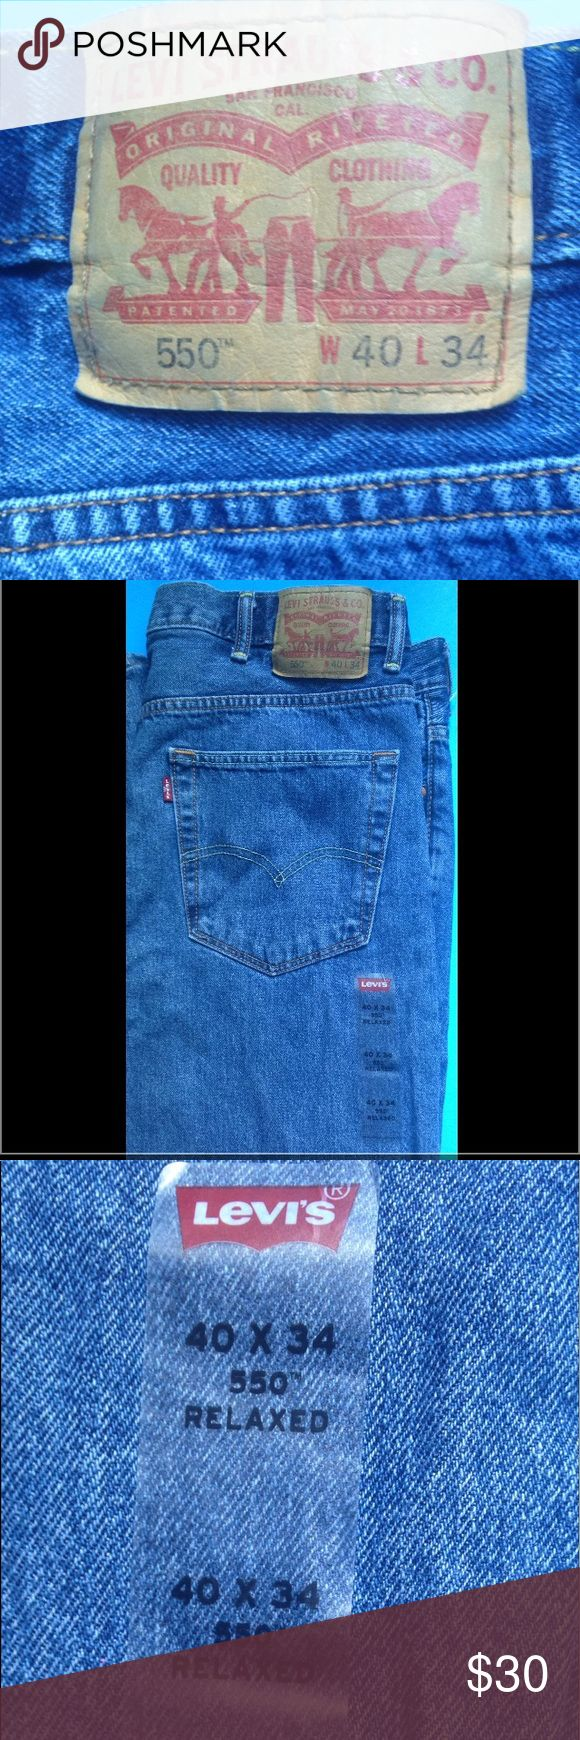 Men's Levi Jeans Men's Levi Jeans . 550. 40x34. Relaxed fit. New-Never worn Levi's Jeans Relaxed